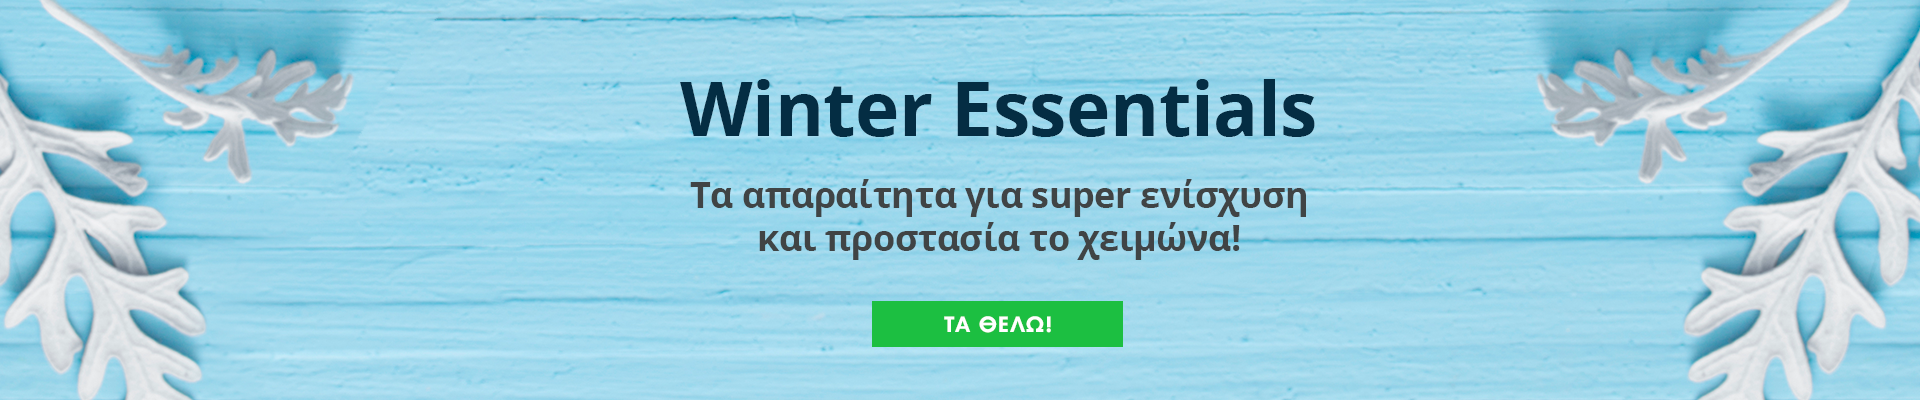 Winter Essentials 14/1/20